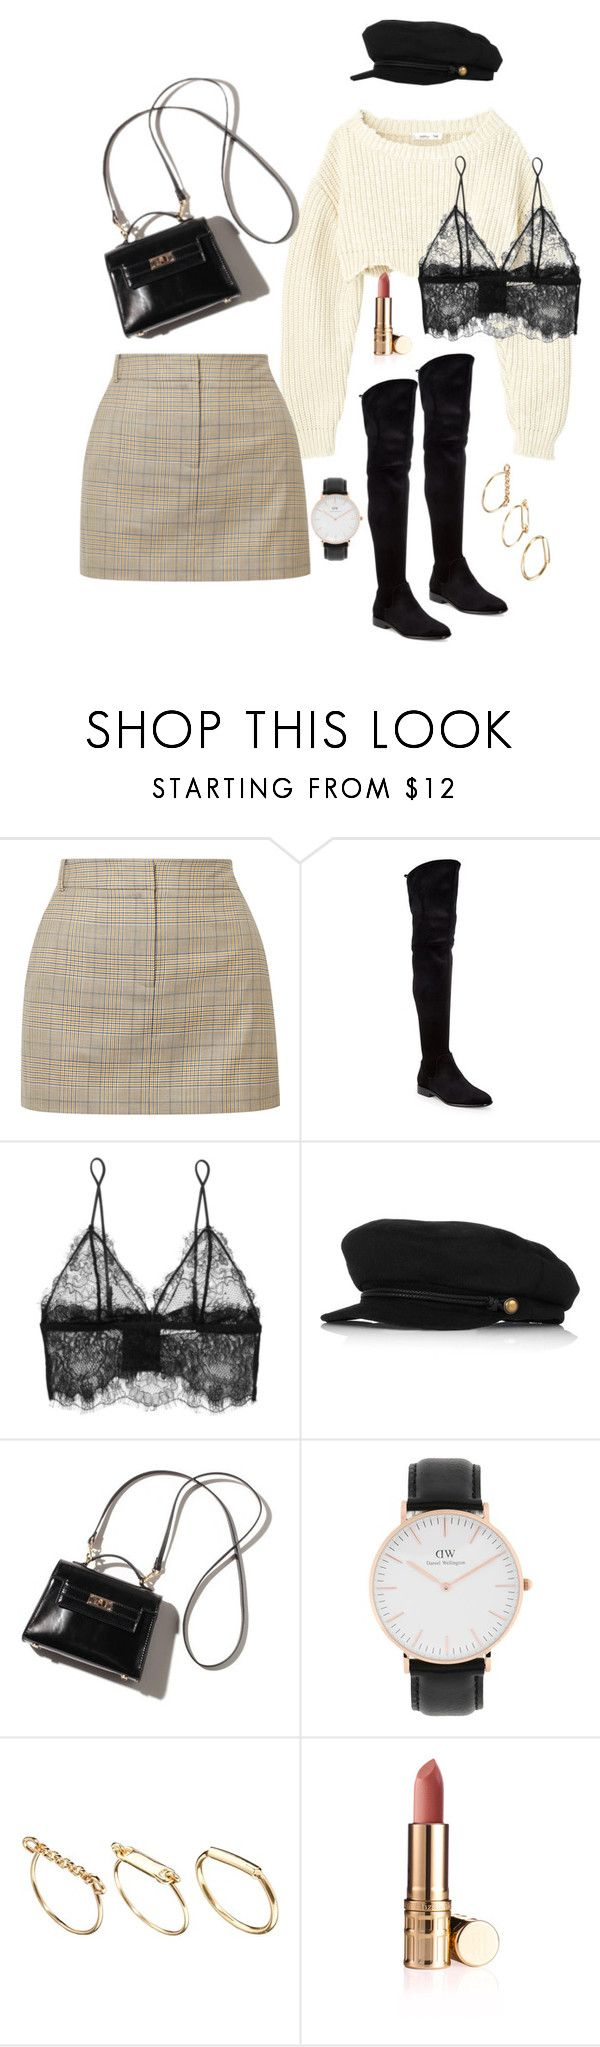 """Untitled #200"" by carolina11297 ❤ liked on Polyvore featuring TIBI, Donna Karan, Anine Bing, Eugenia Kim, Daniel Wellington and ASOS"